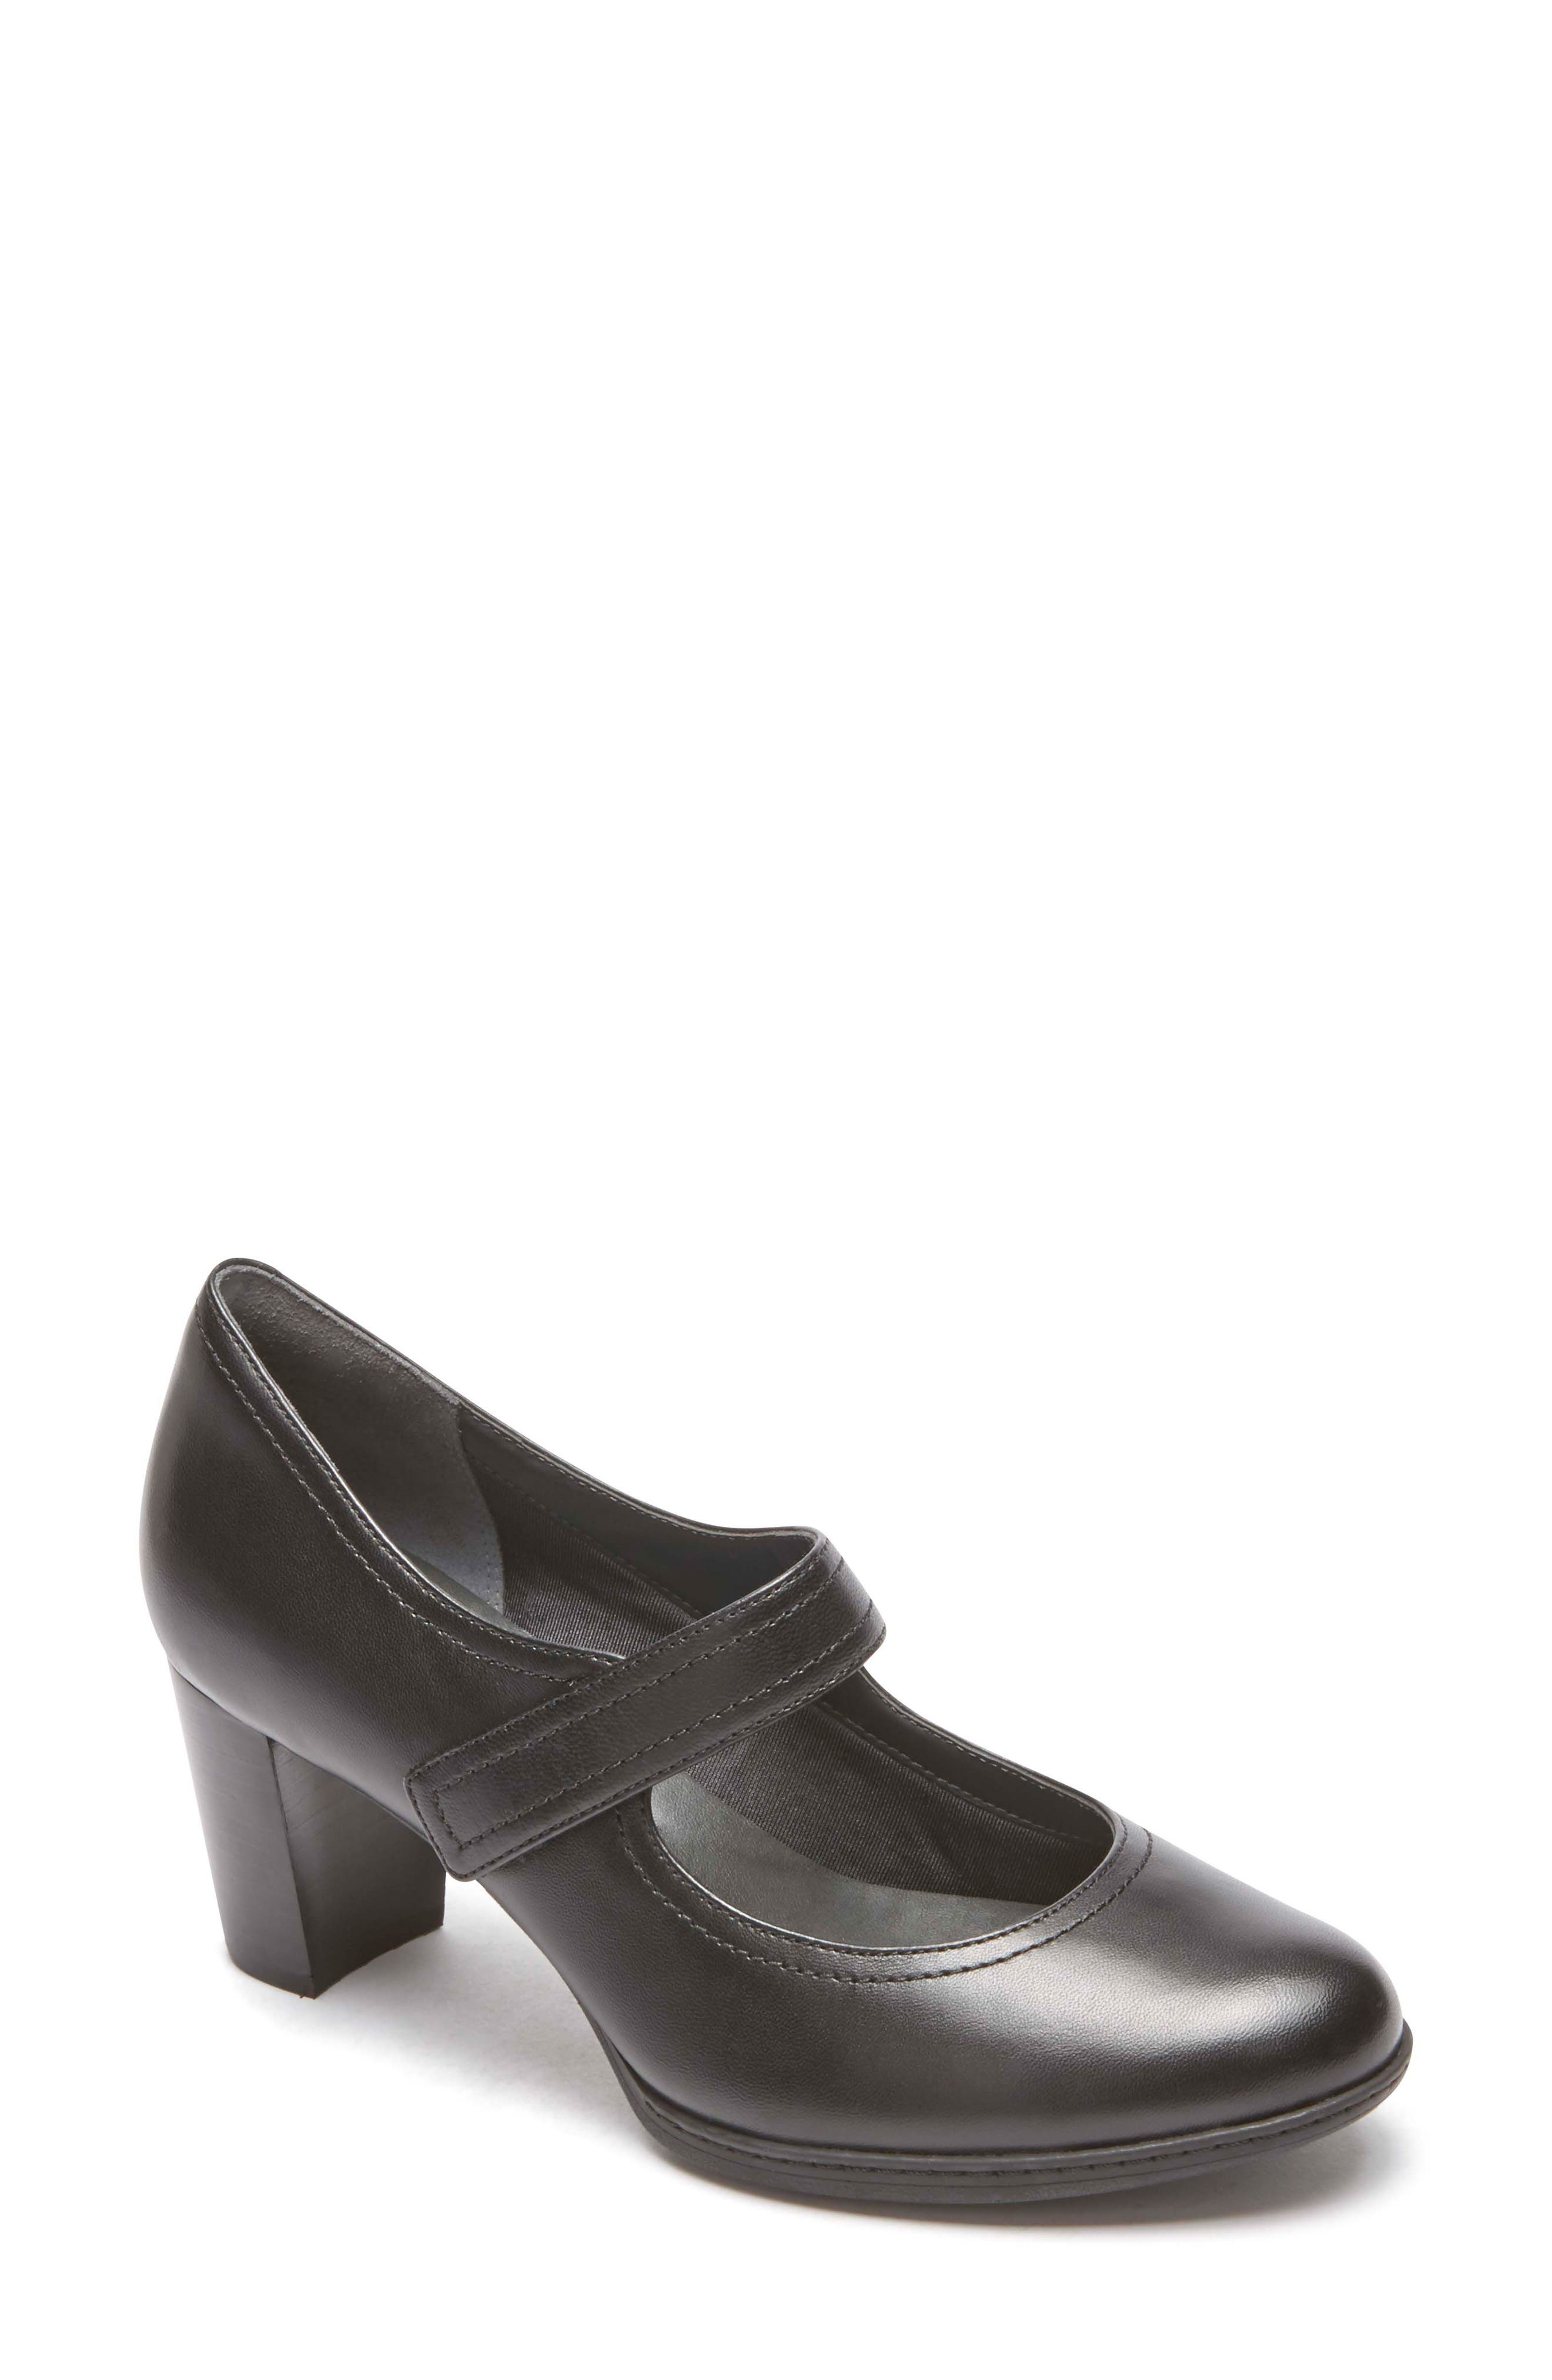 Main Image - Rockport Chaya Mary Jane Pump (Women)